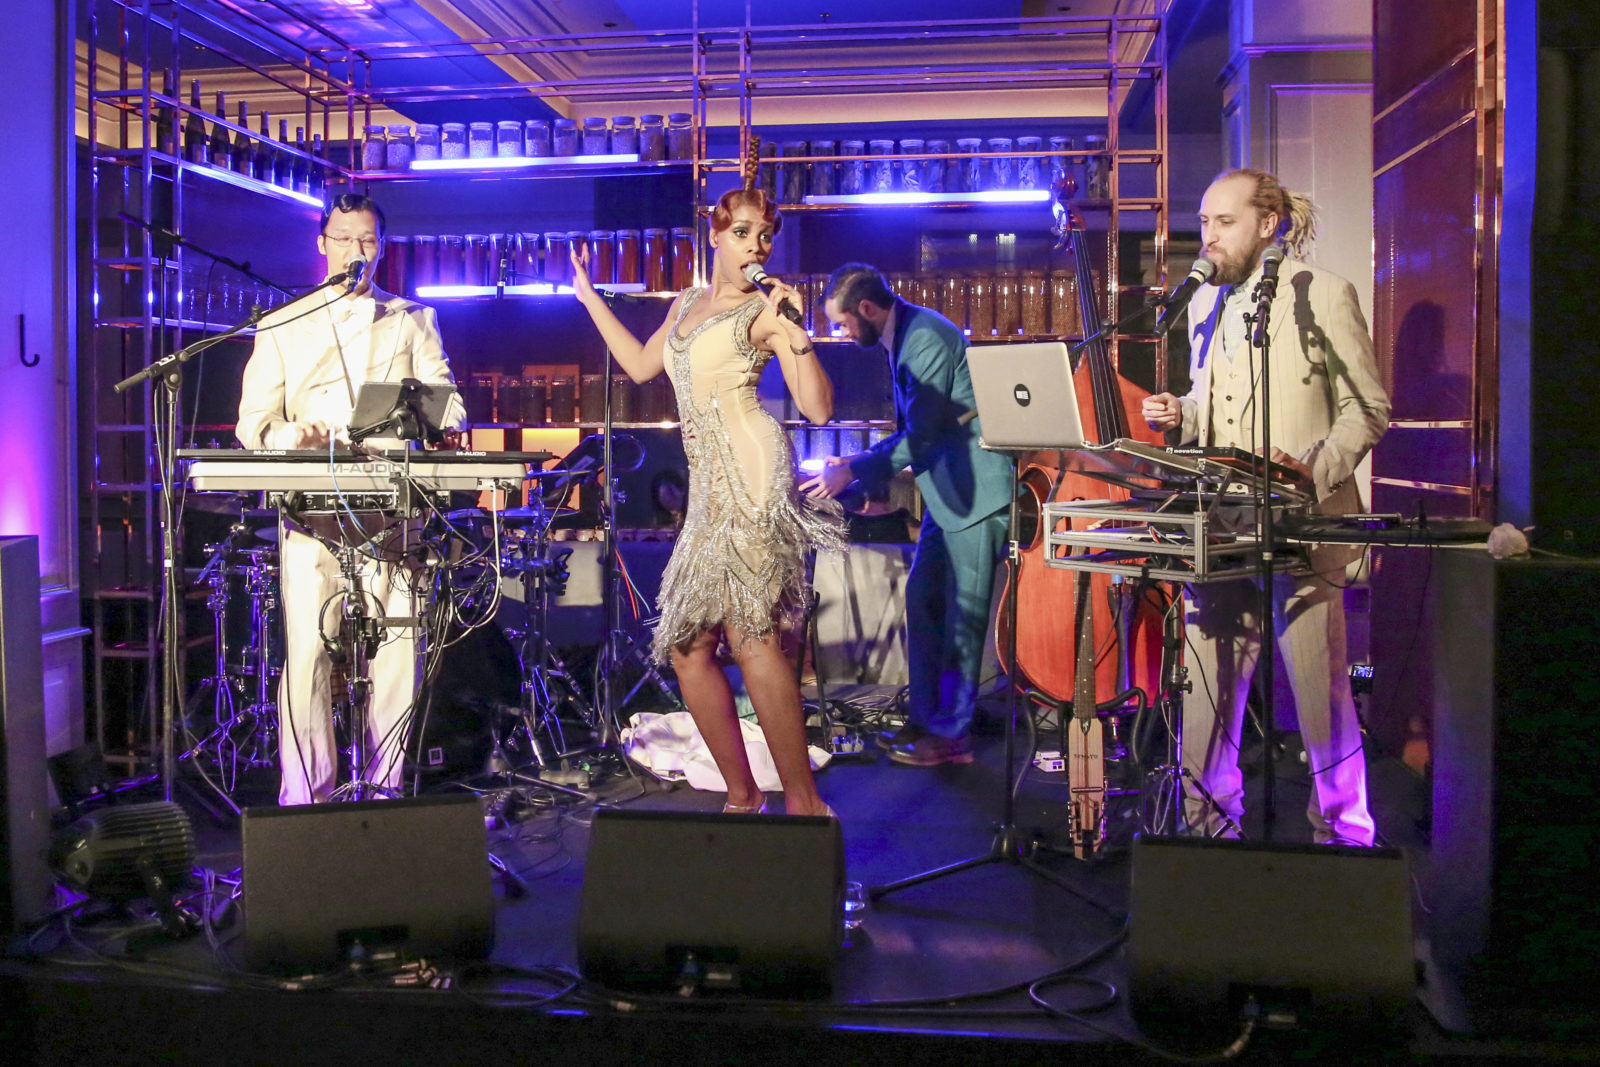 BERLIN, GERMANY - MARCH 05: Alice Francis performs during the Ritz Carlton Berlin Re-Opening Party at Ritz Carlton on March 5, 2019 in Berlin, Germany. (Photo by Isa Foltin/Getty Images for Ritz Carlton)